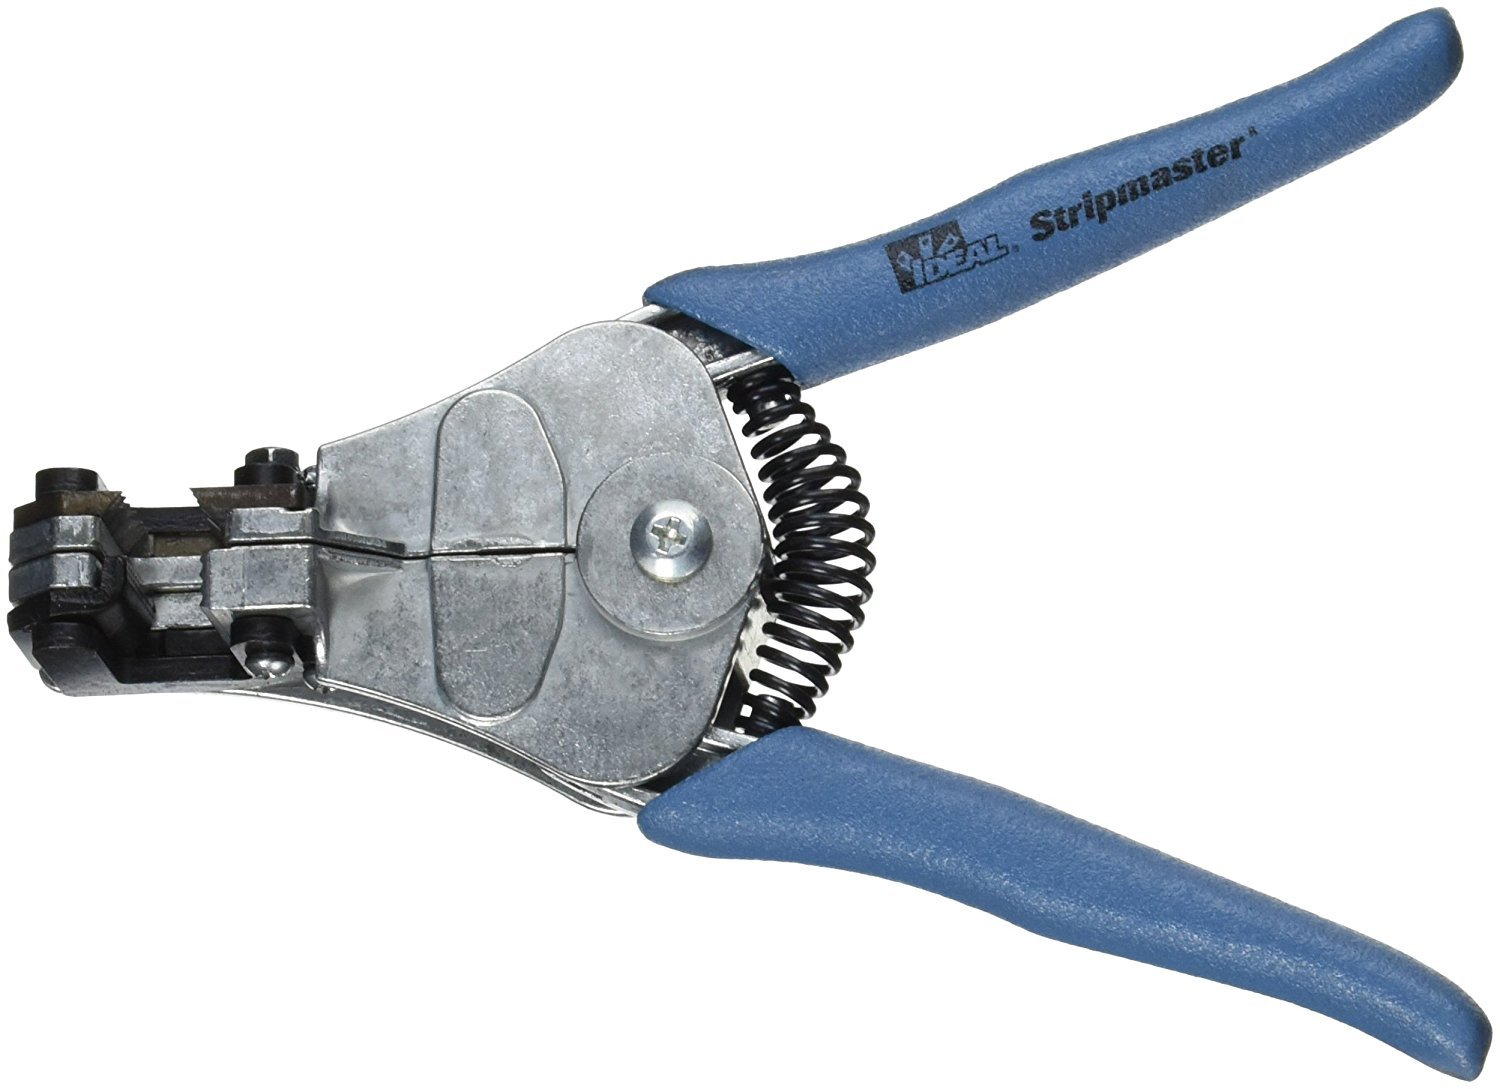 IDEAL 45-092 Stripmaster Wire Stripper for No.10 to No.22 AWG by Ideal